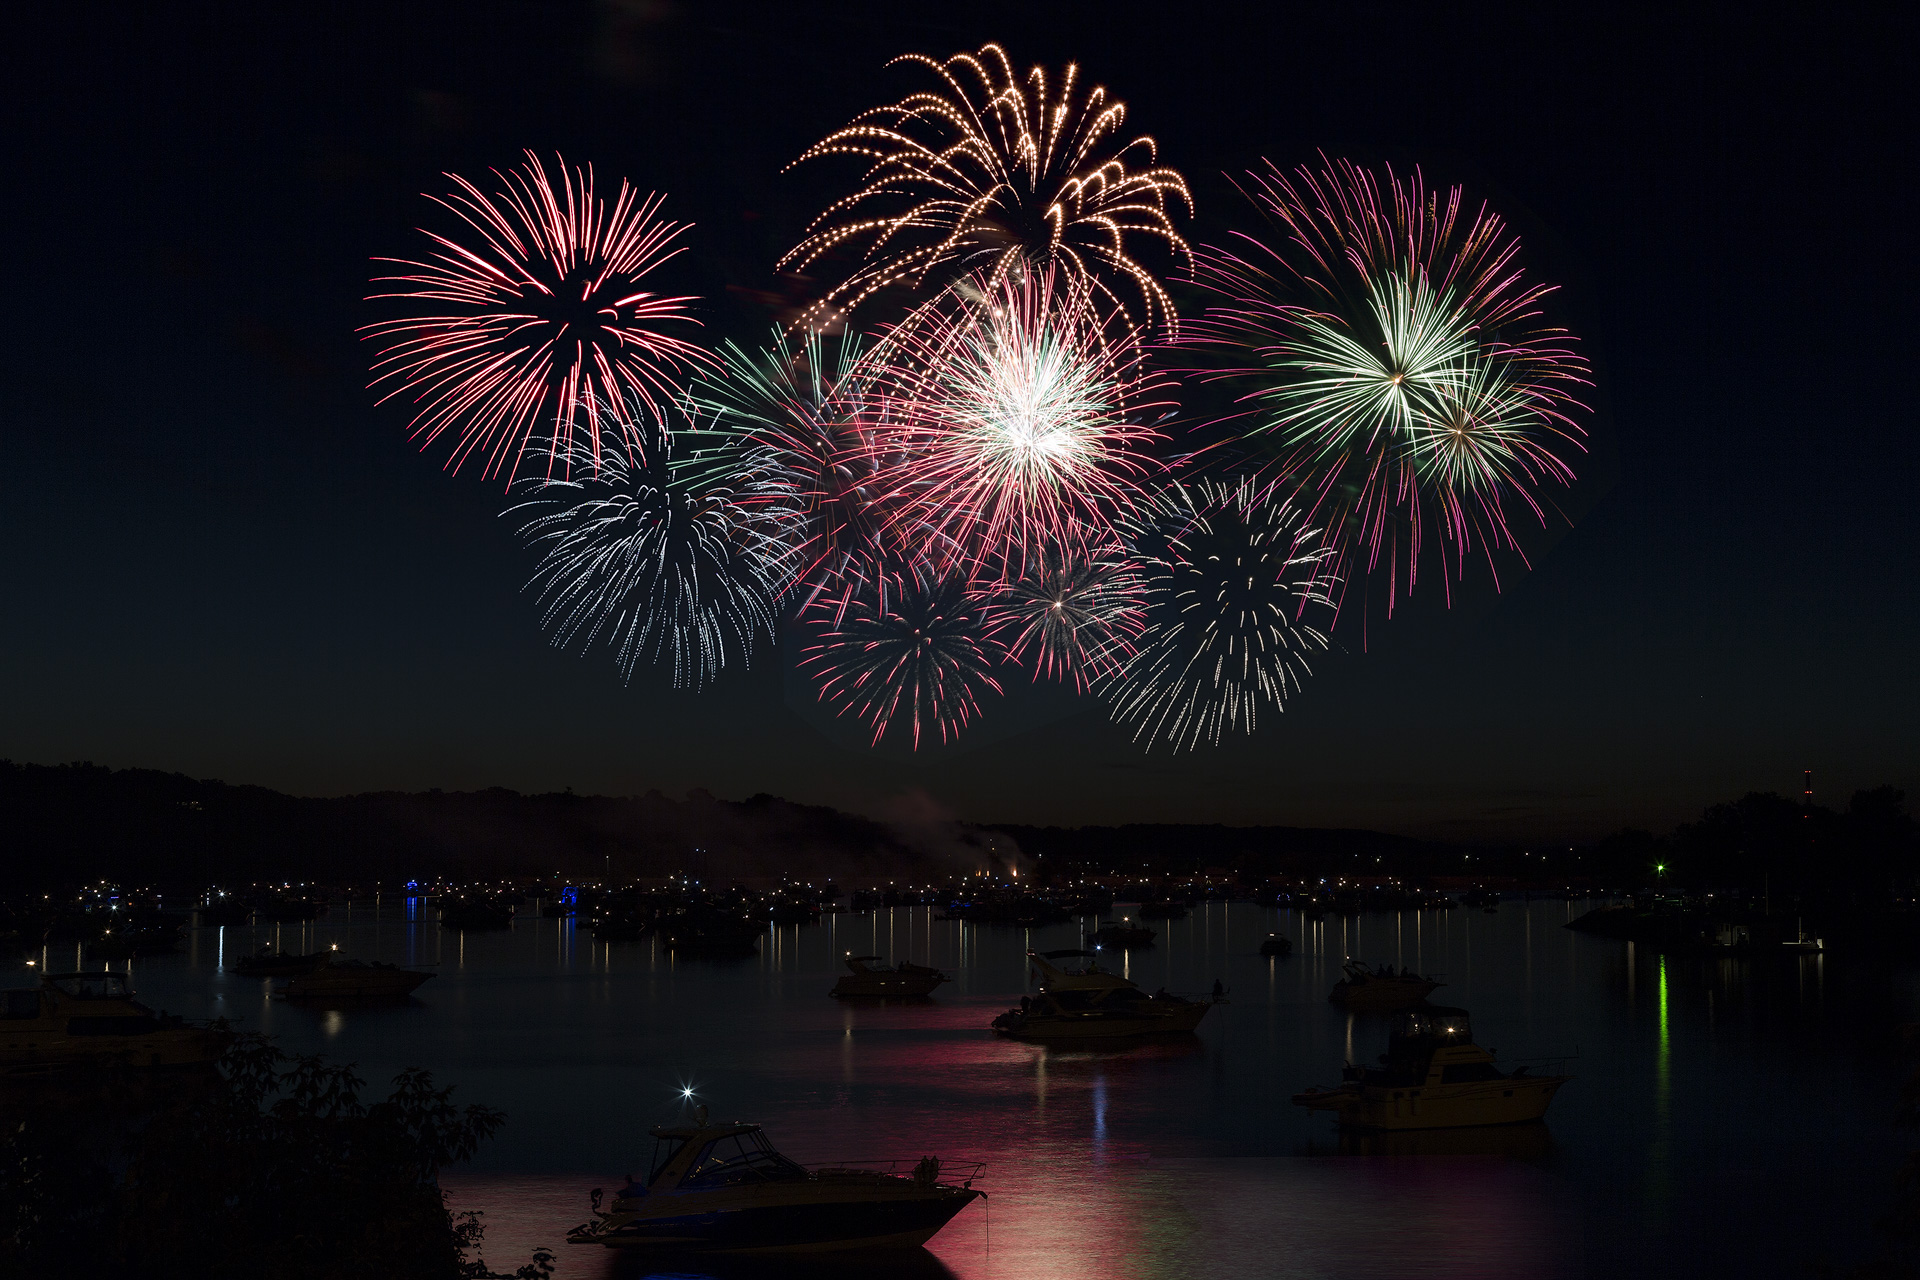 Hudson Fireworks - Digital (Artificial Light) - Name Withheld Per Request